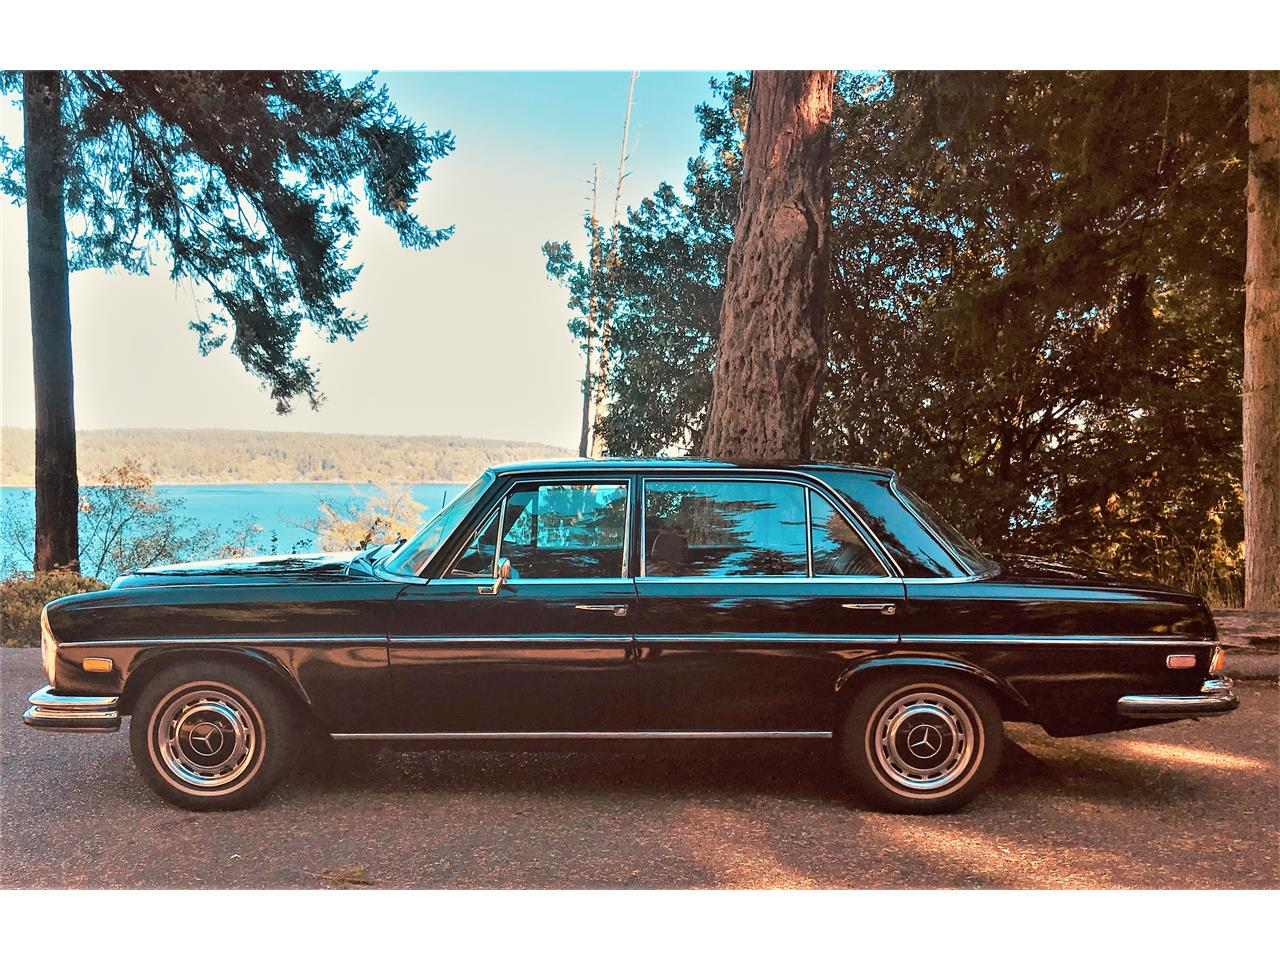 hight resolution of  engine 1972 mercedes benz 280sel for sale cliccars com cc 1155551 on